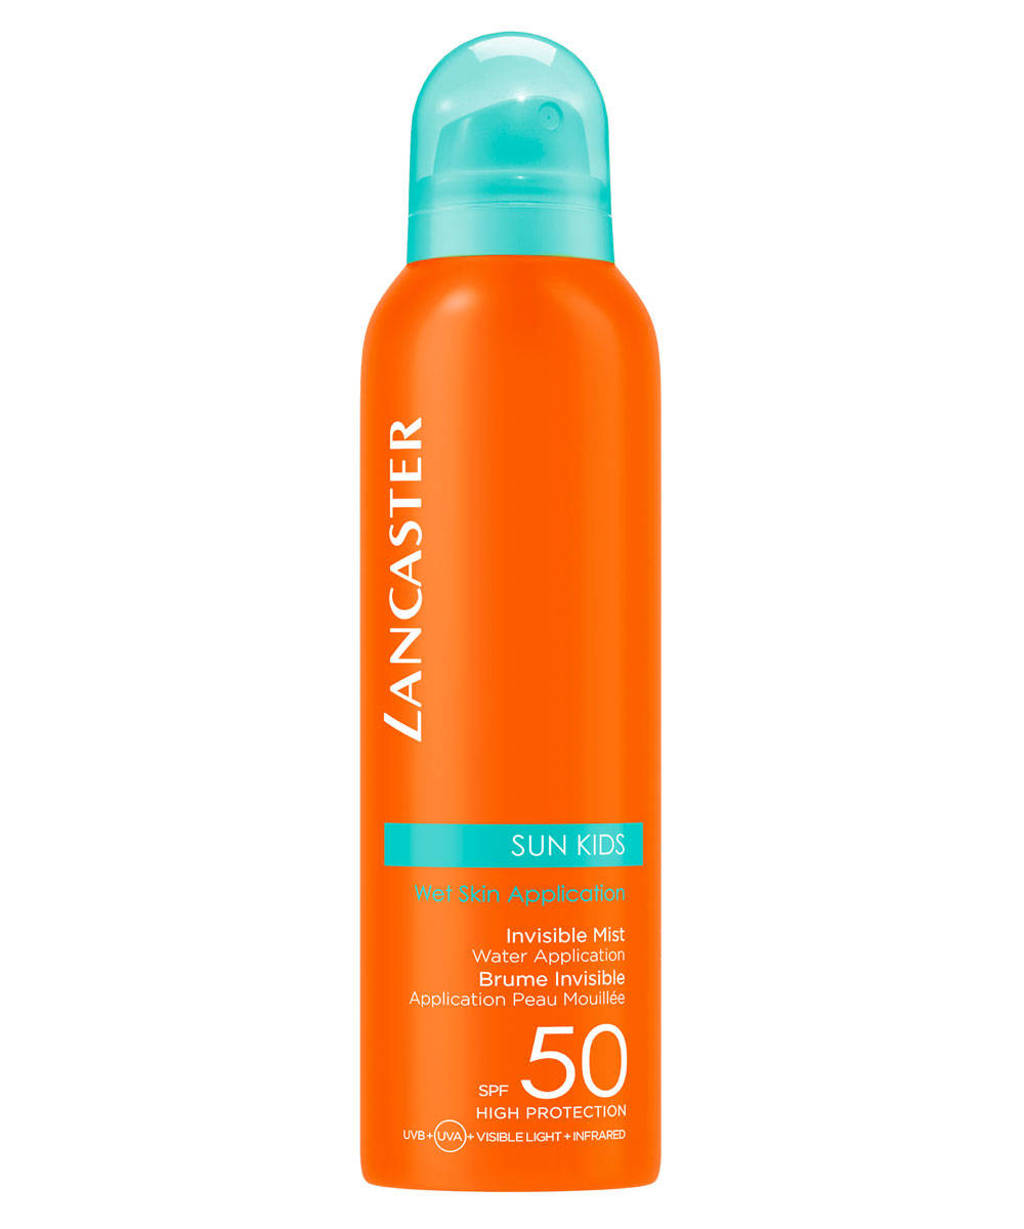 Lancaster Sun Kids Sun Kids Invisible Mist Body SPF50